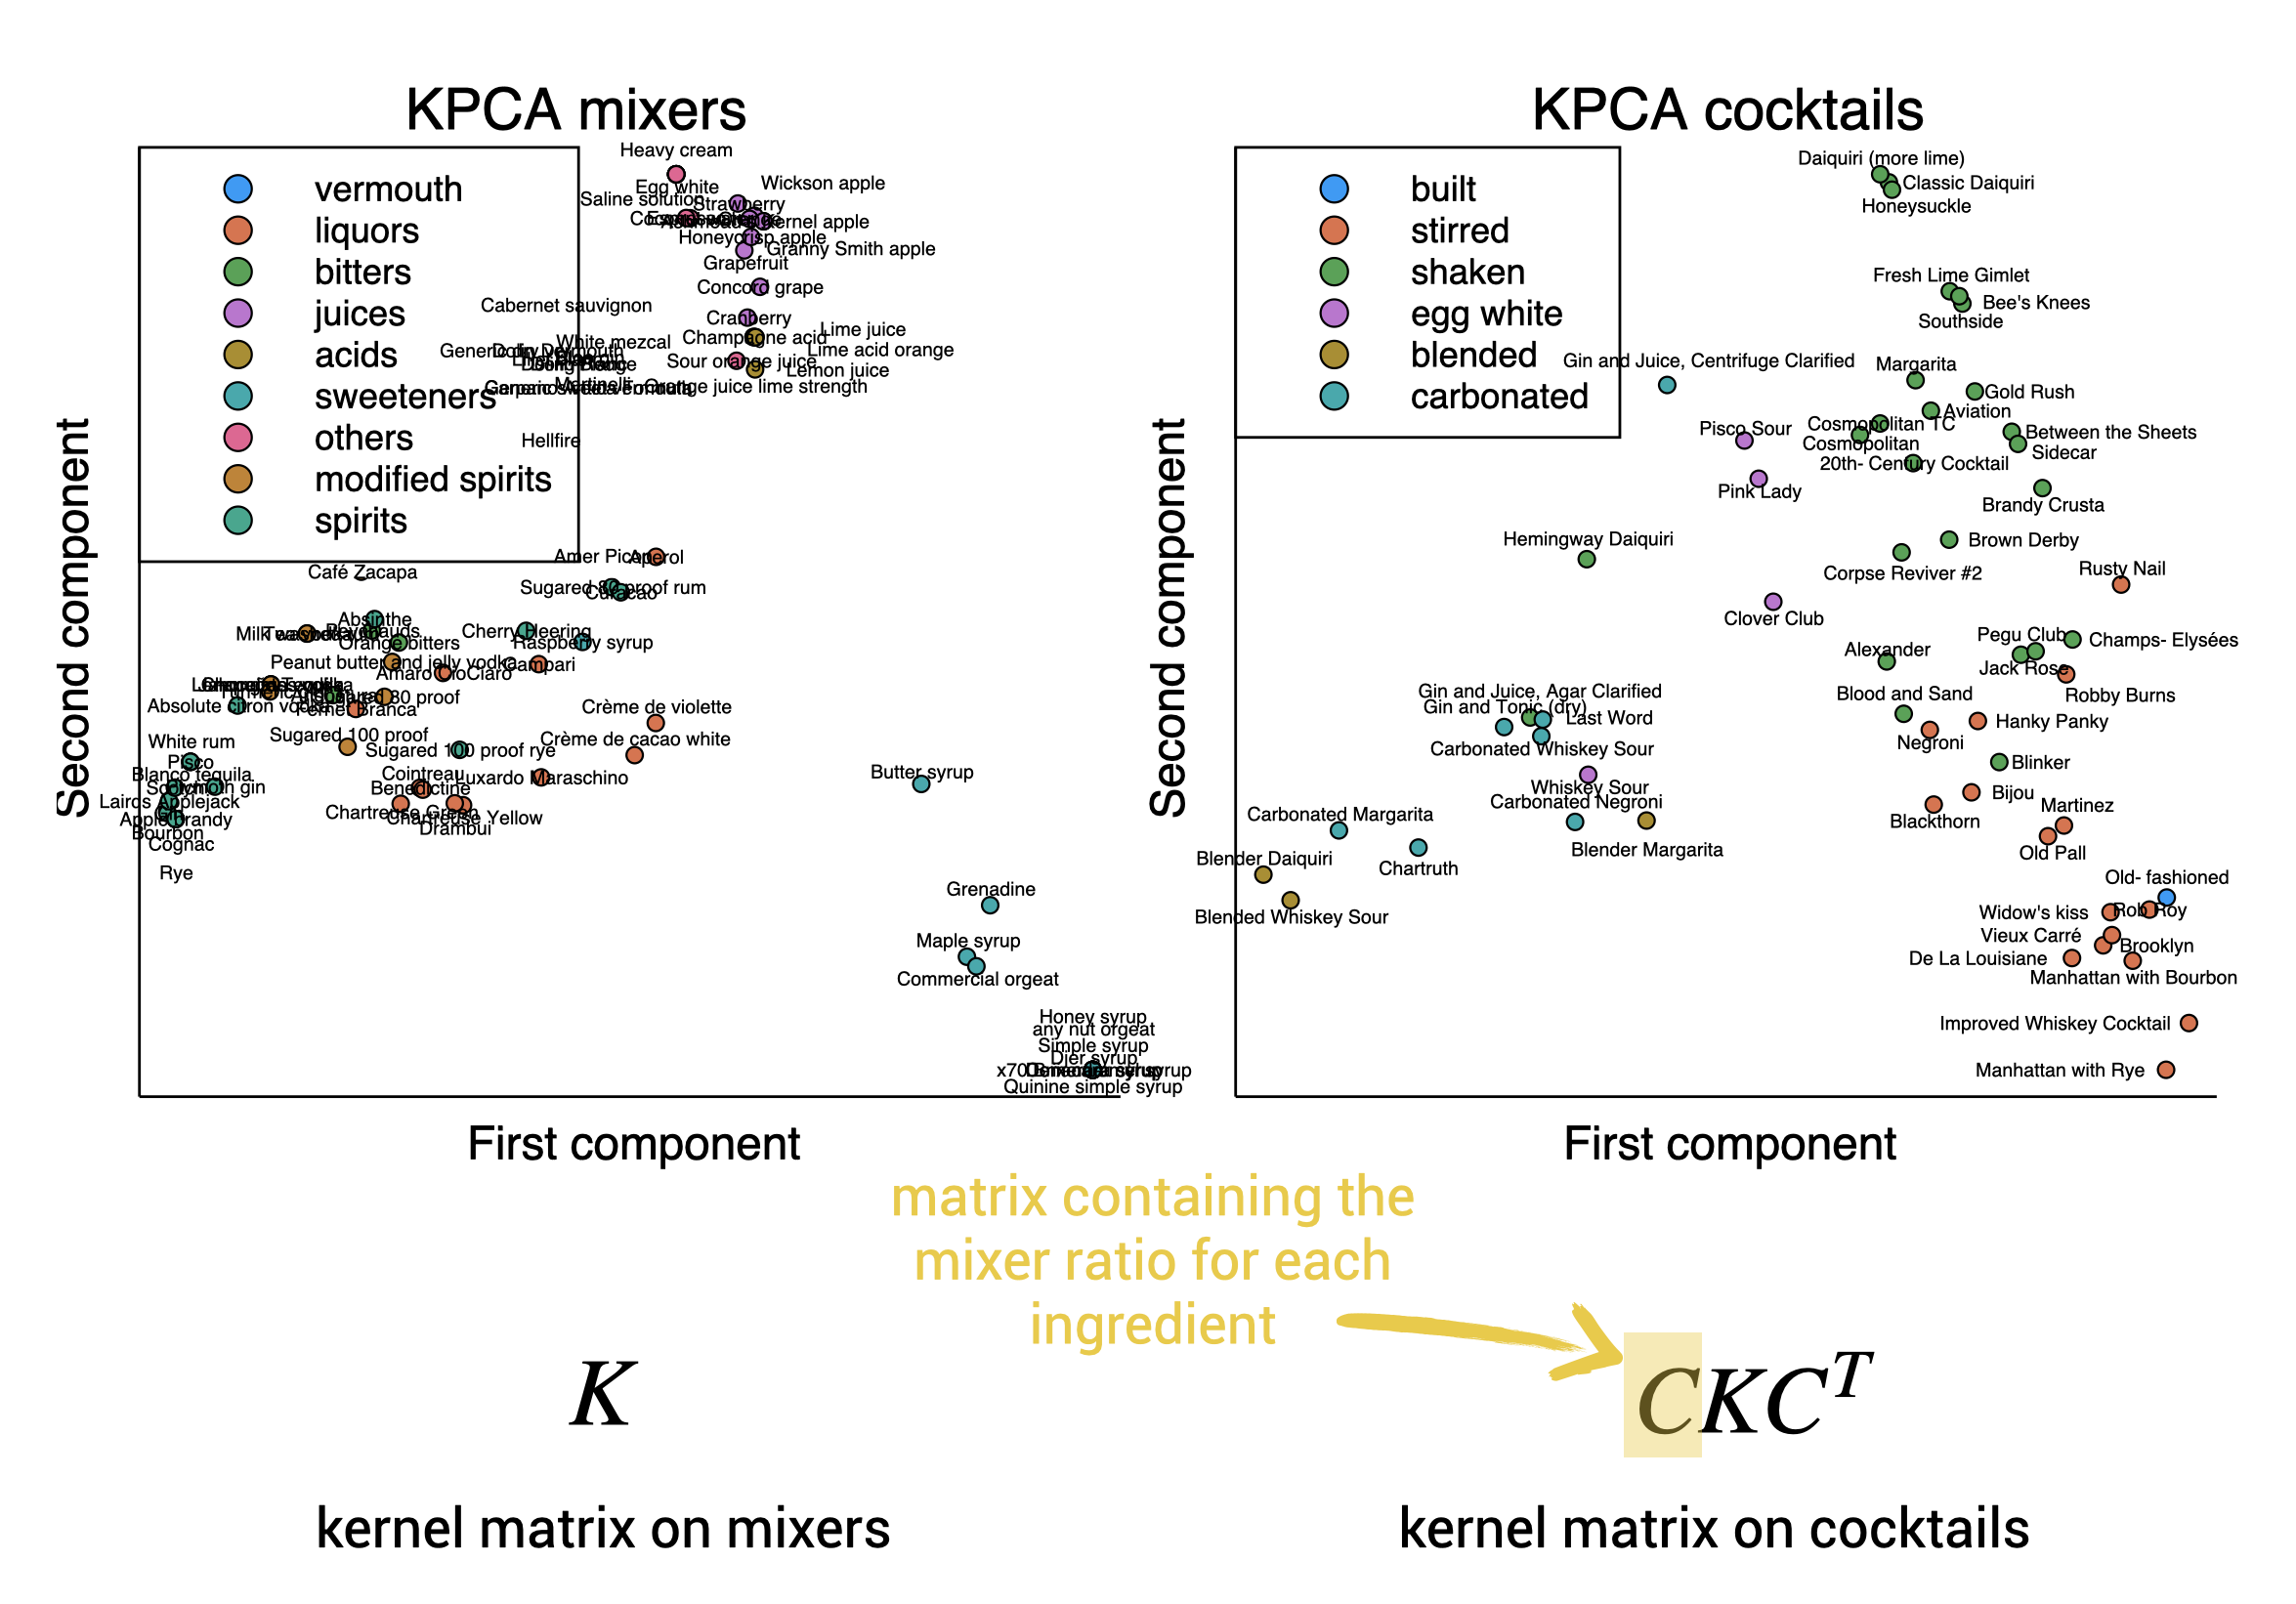 Kernel PCA of the mixers and the cocktails.